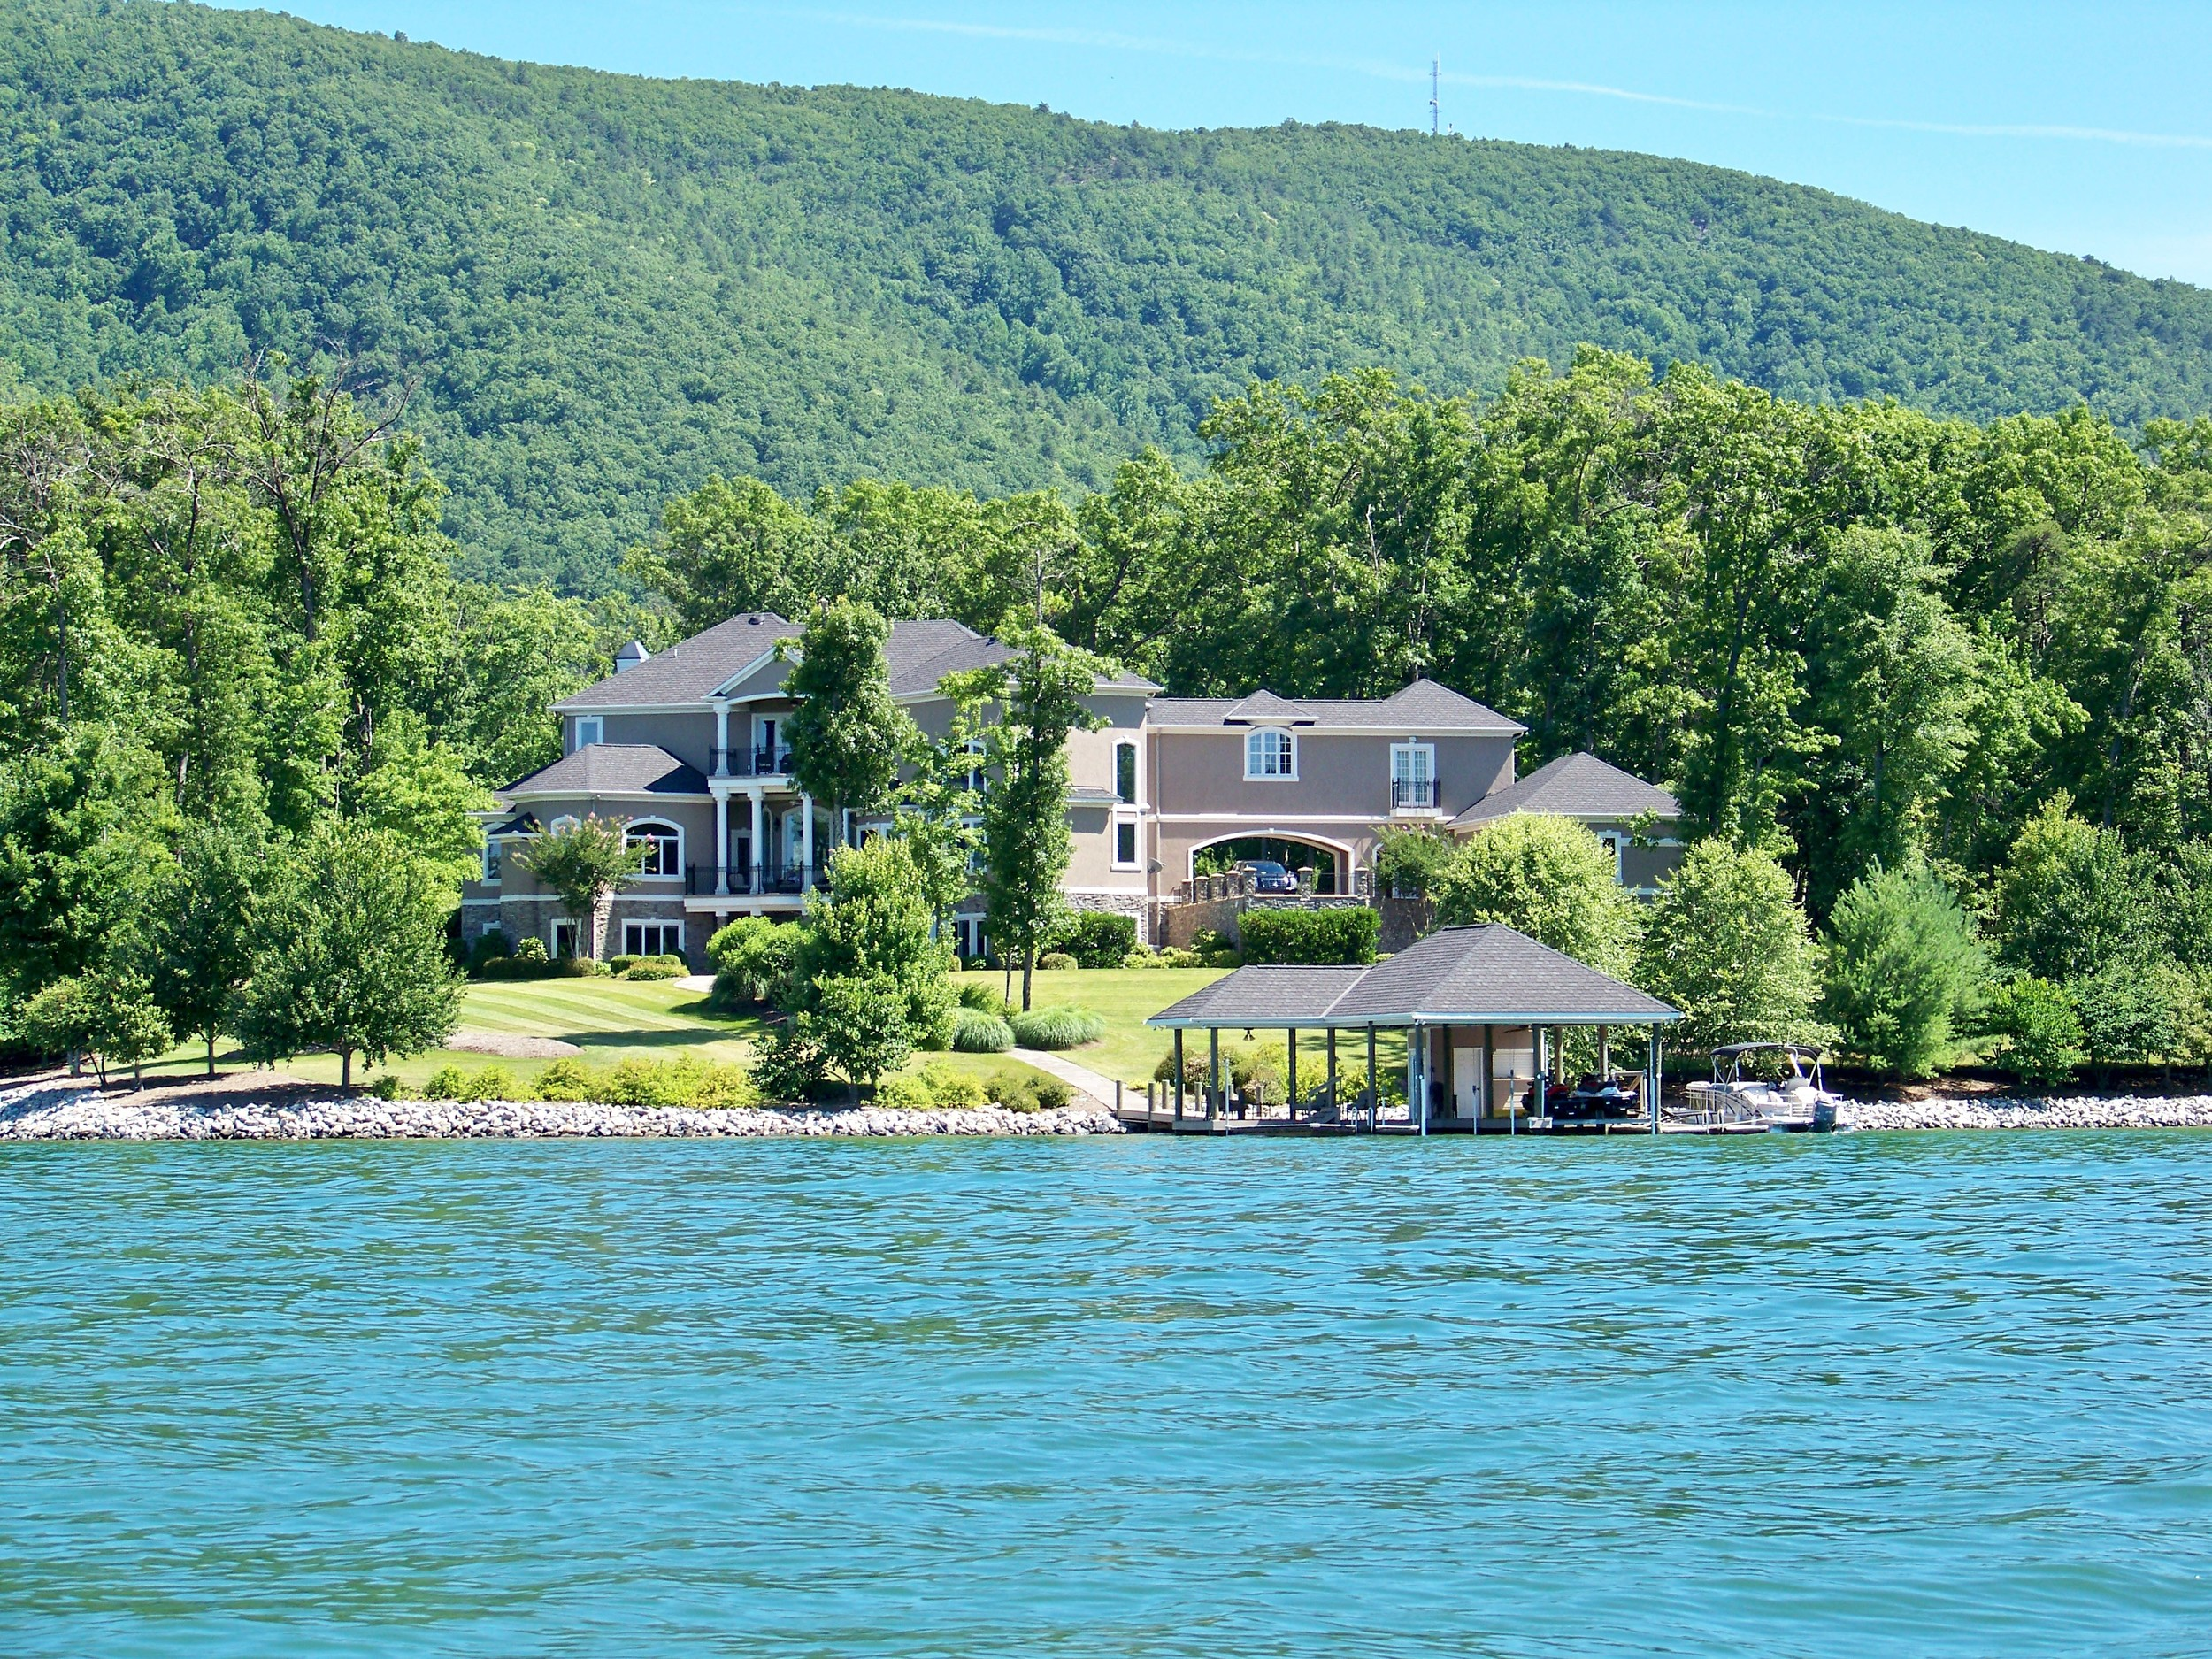 Homes and private docks nestled in green mountains can be found throughout the Smith Mountain landscape.